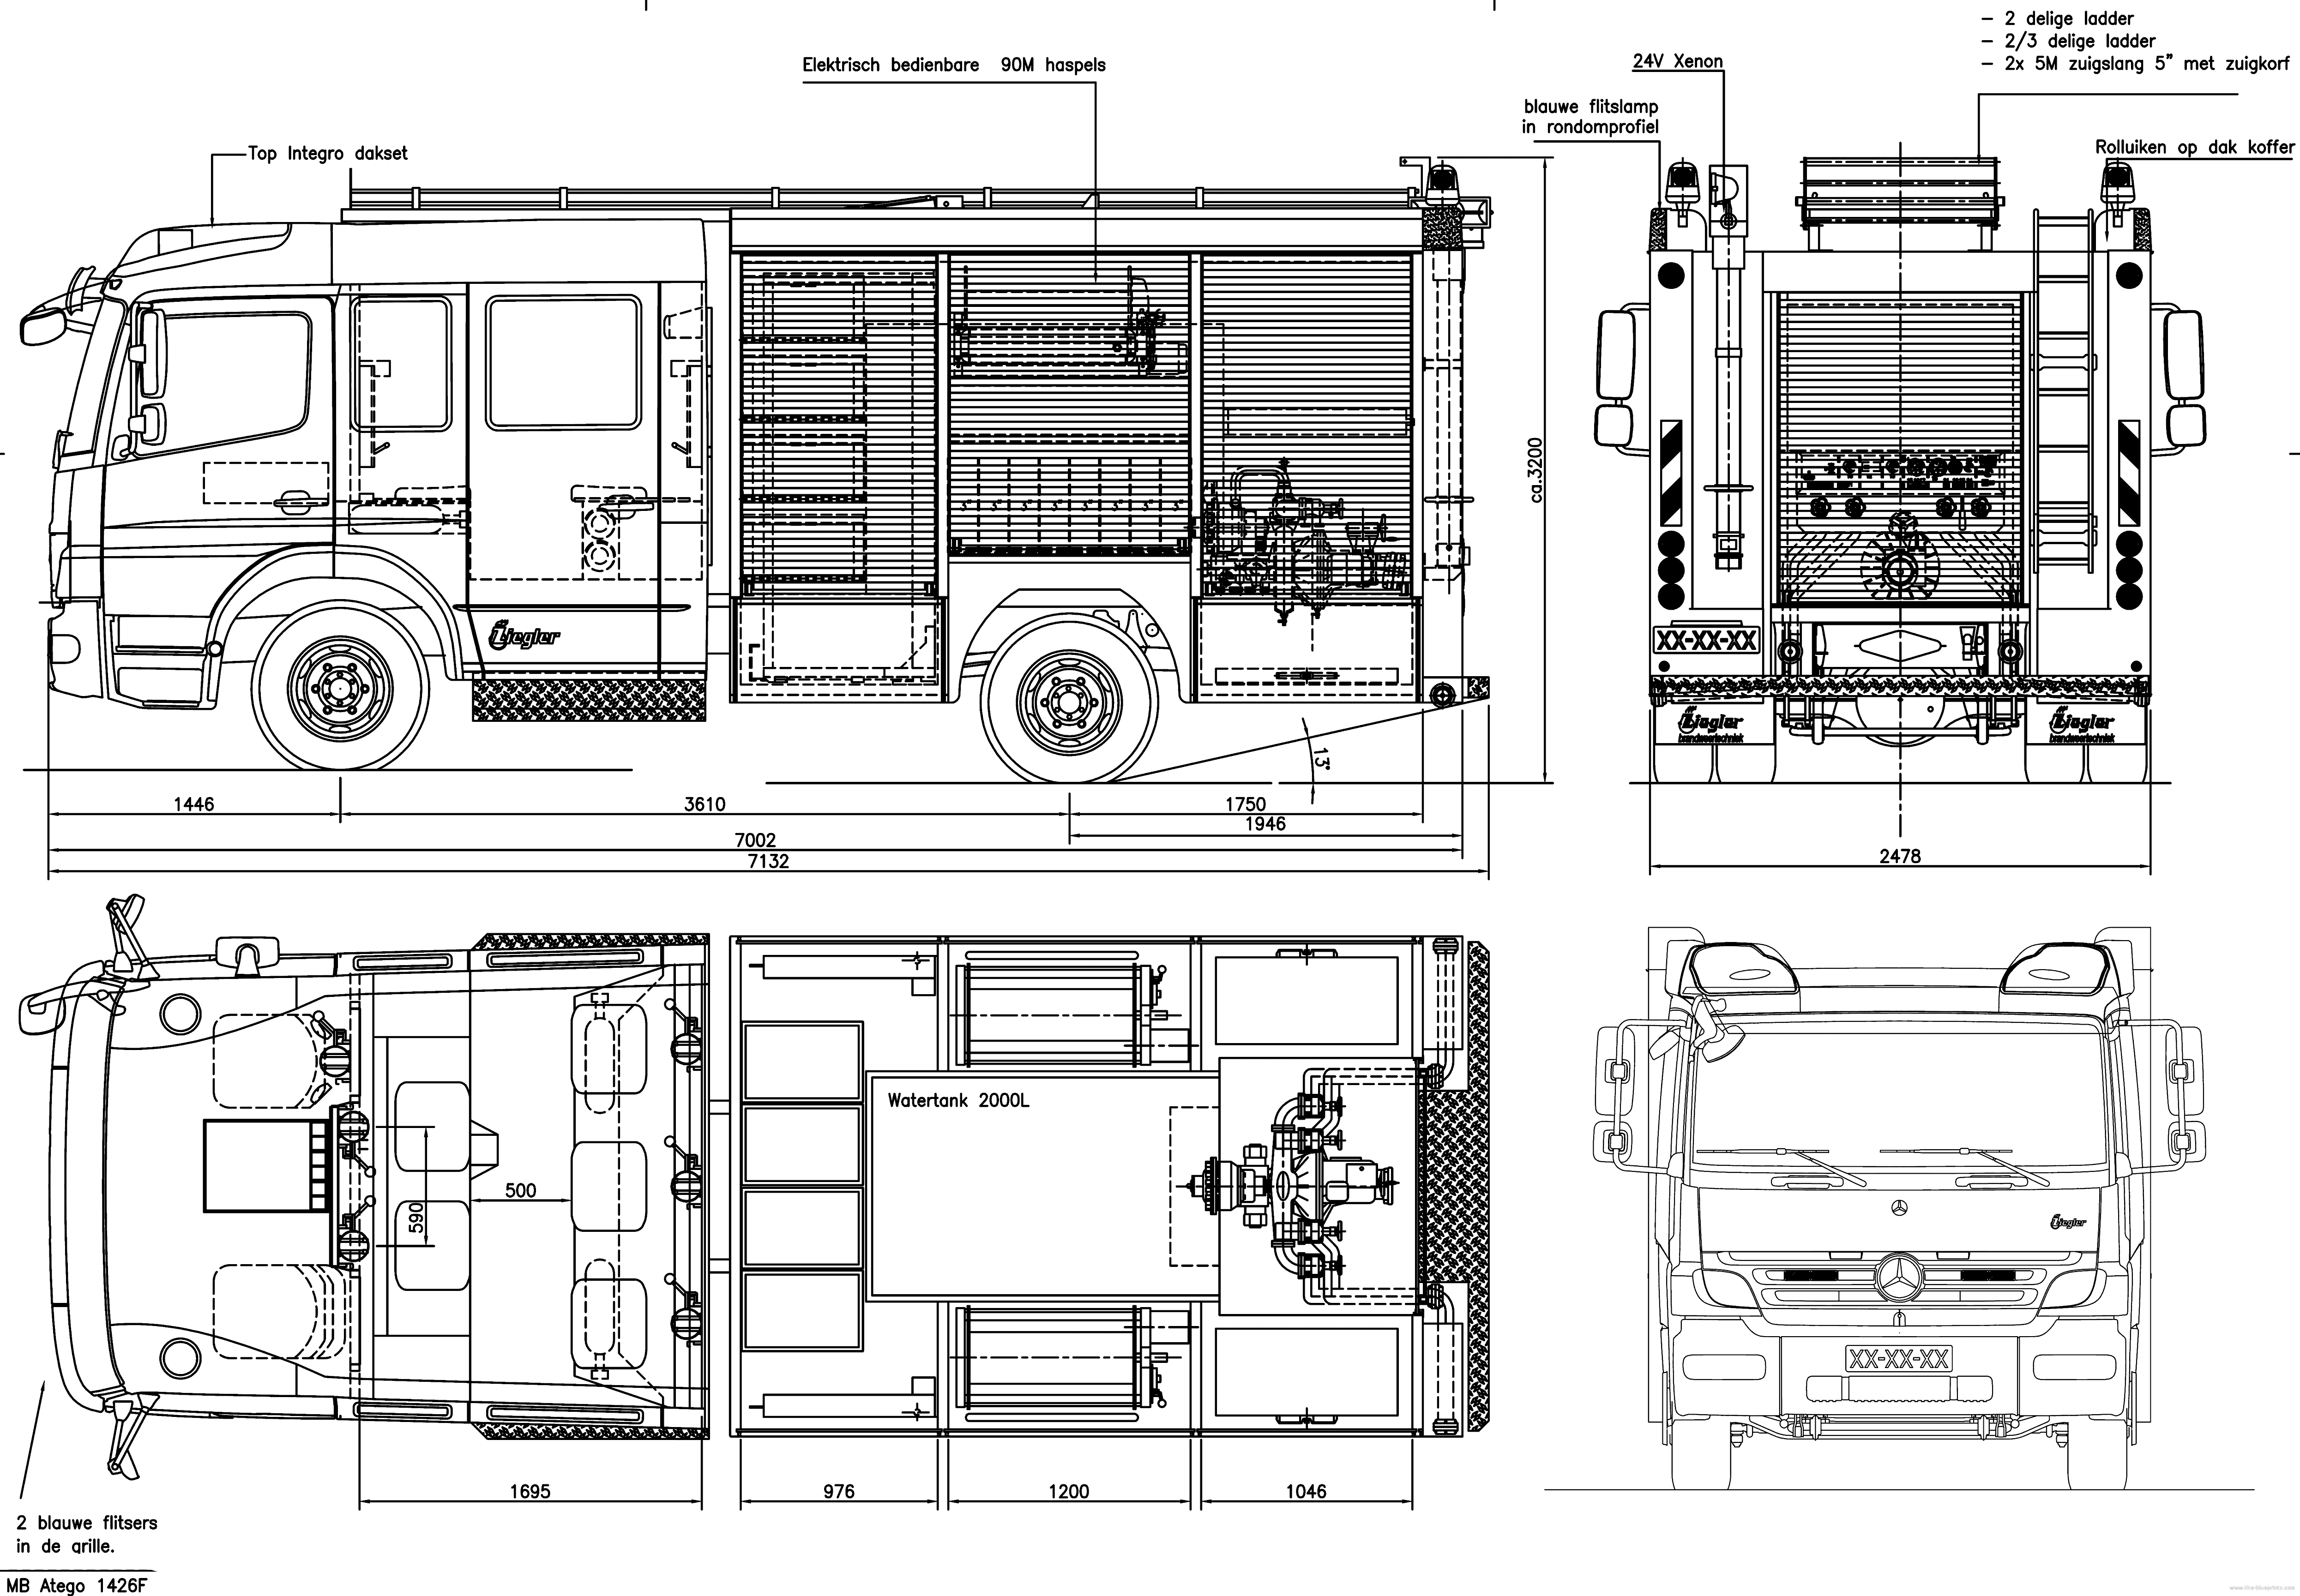 Mercedes-Benz Atego Fire Heavy Truck blueprints free - Outlines